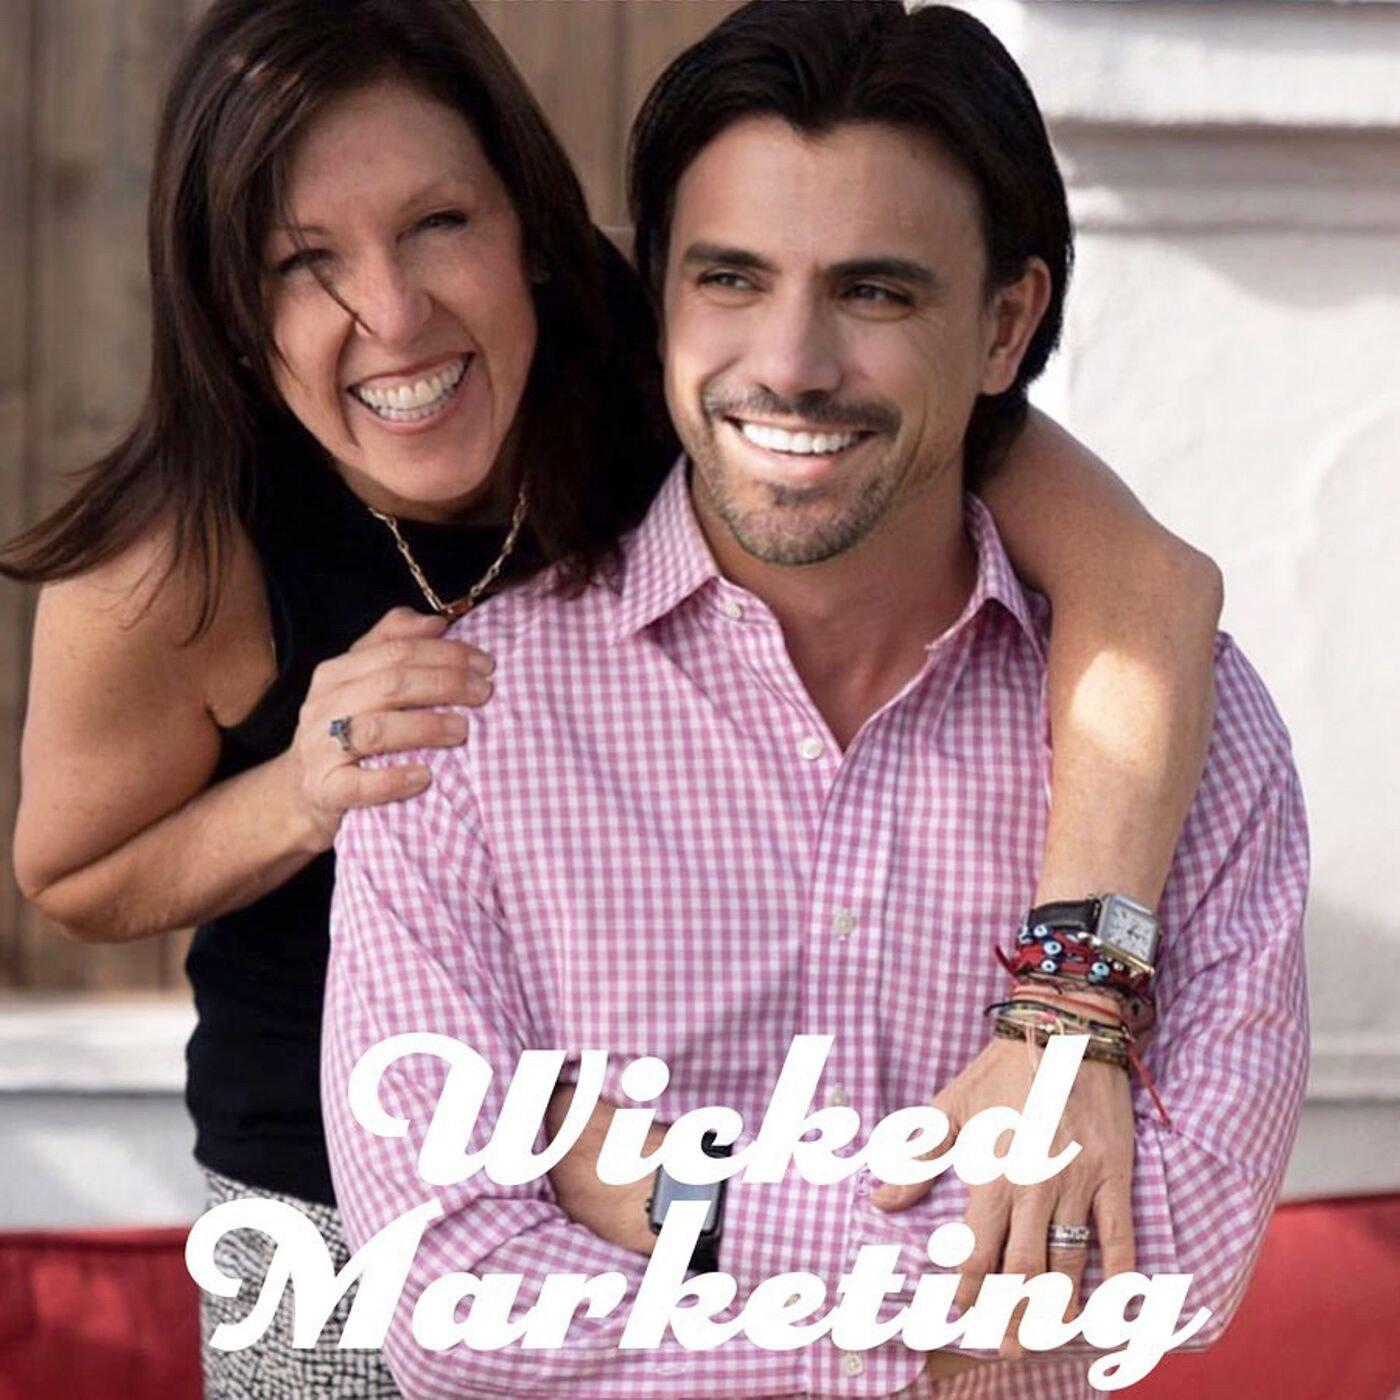 Wicked dating